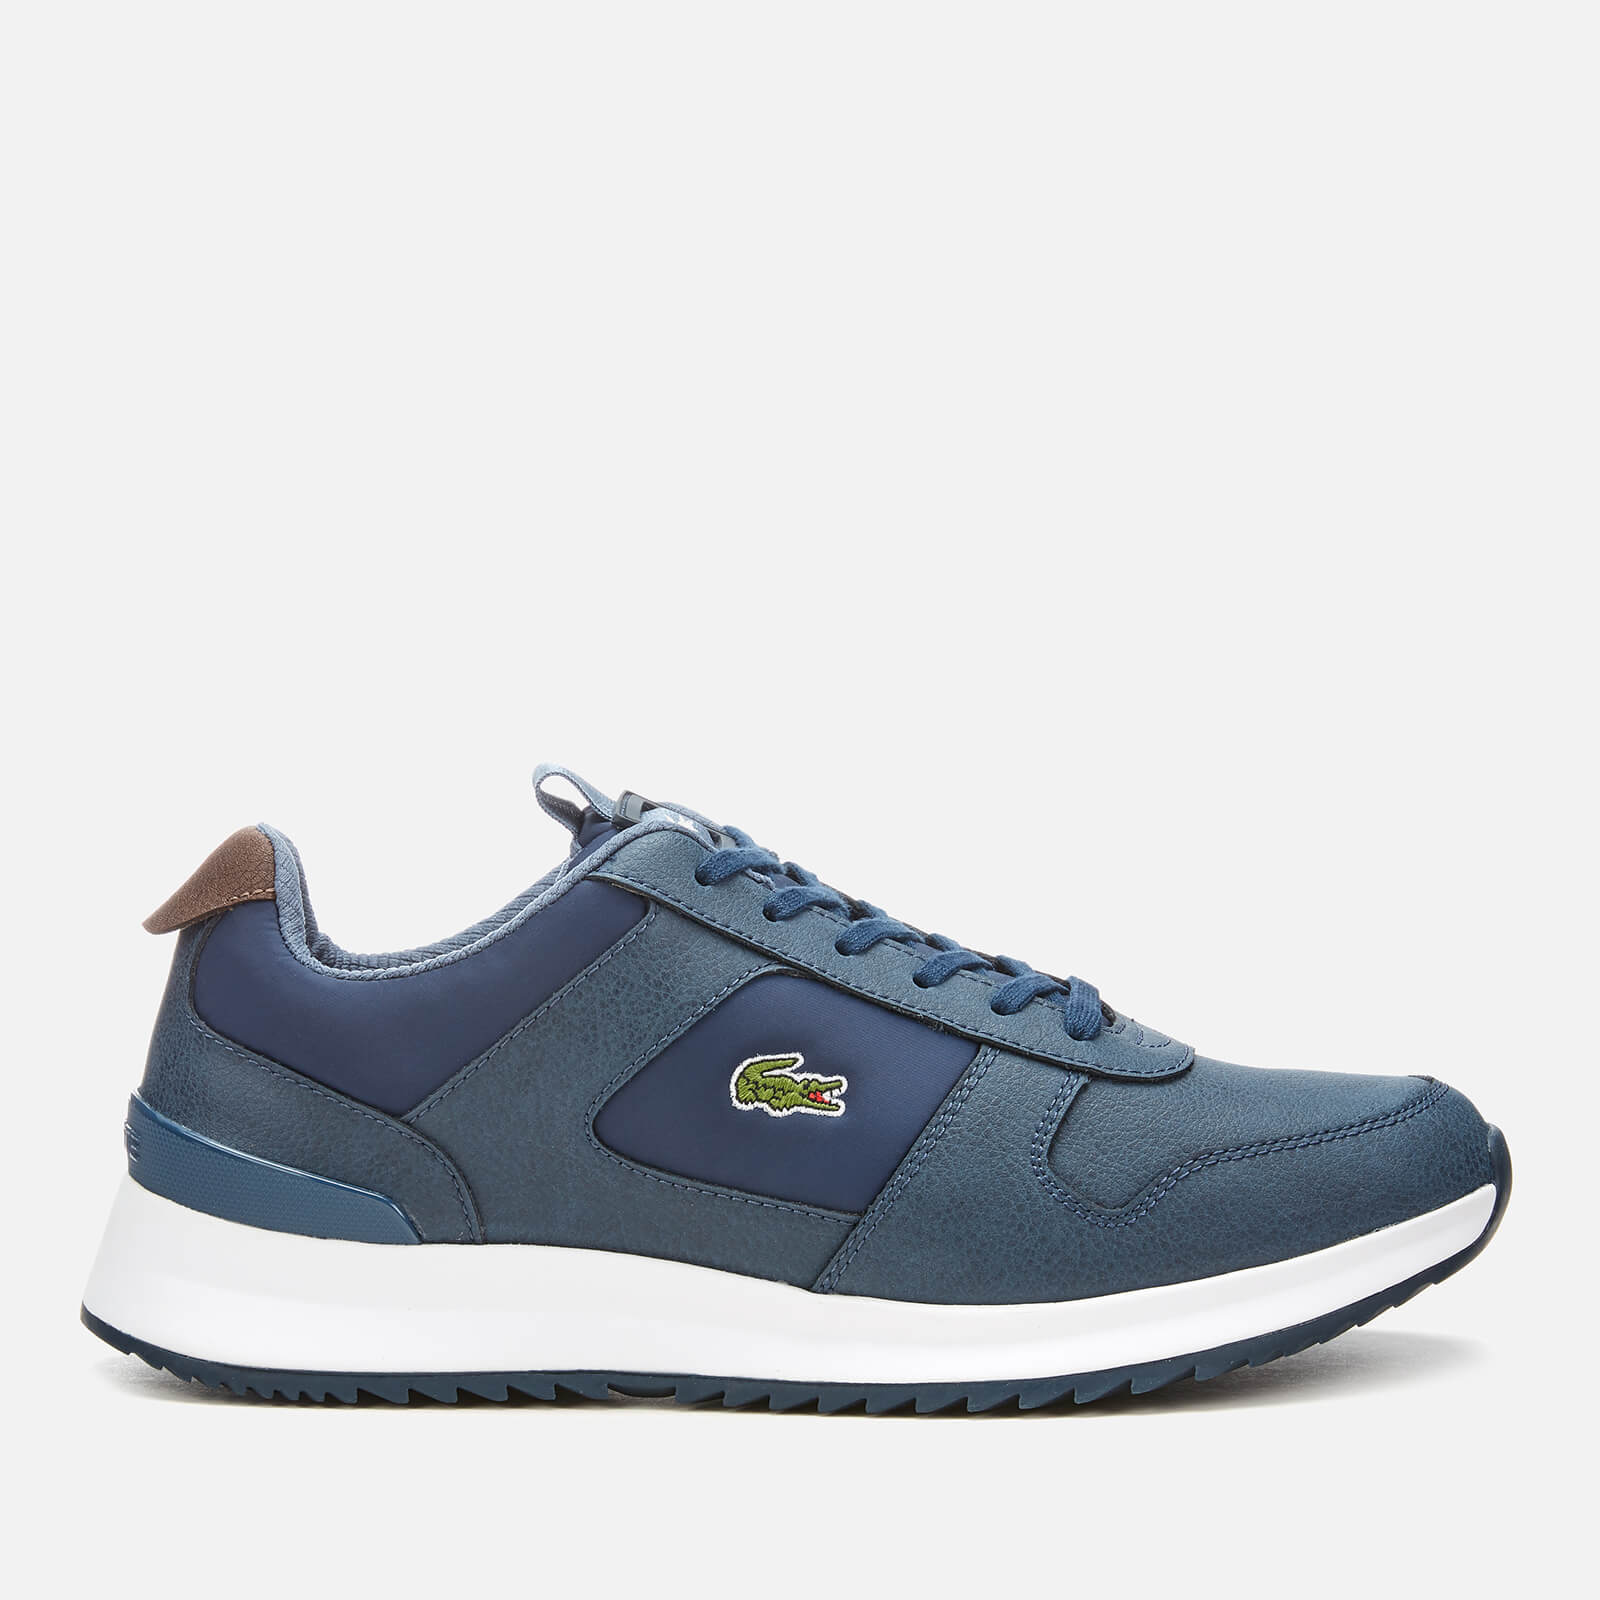 d9720997ec8aa Lacoste Men s Joggeur 2.0 318 1 Textile Leather Runner Style Trainers -  Navy Dark Blue - Free UK Delivery over £50